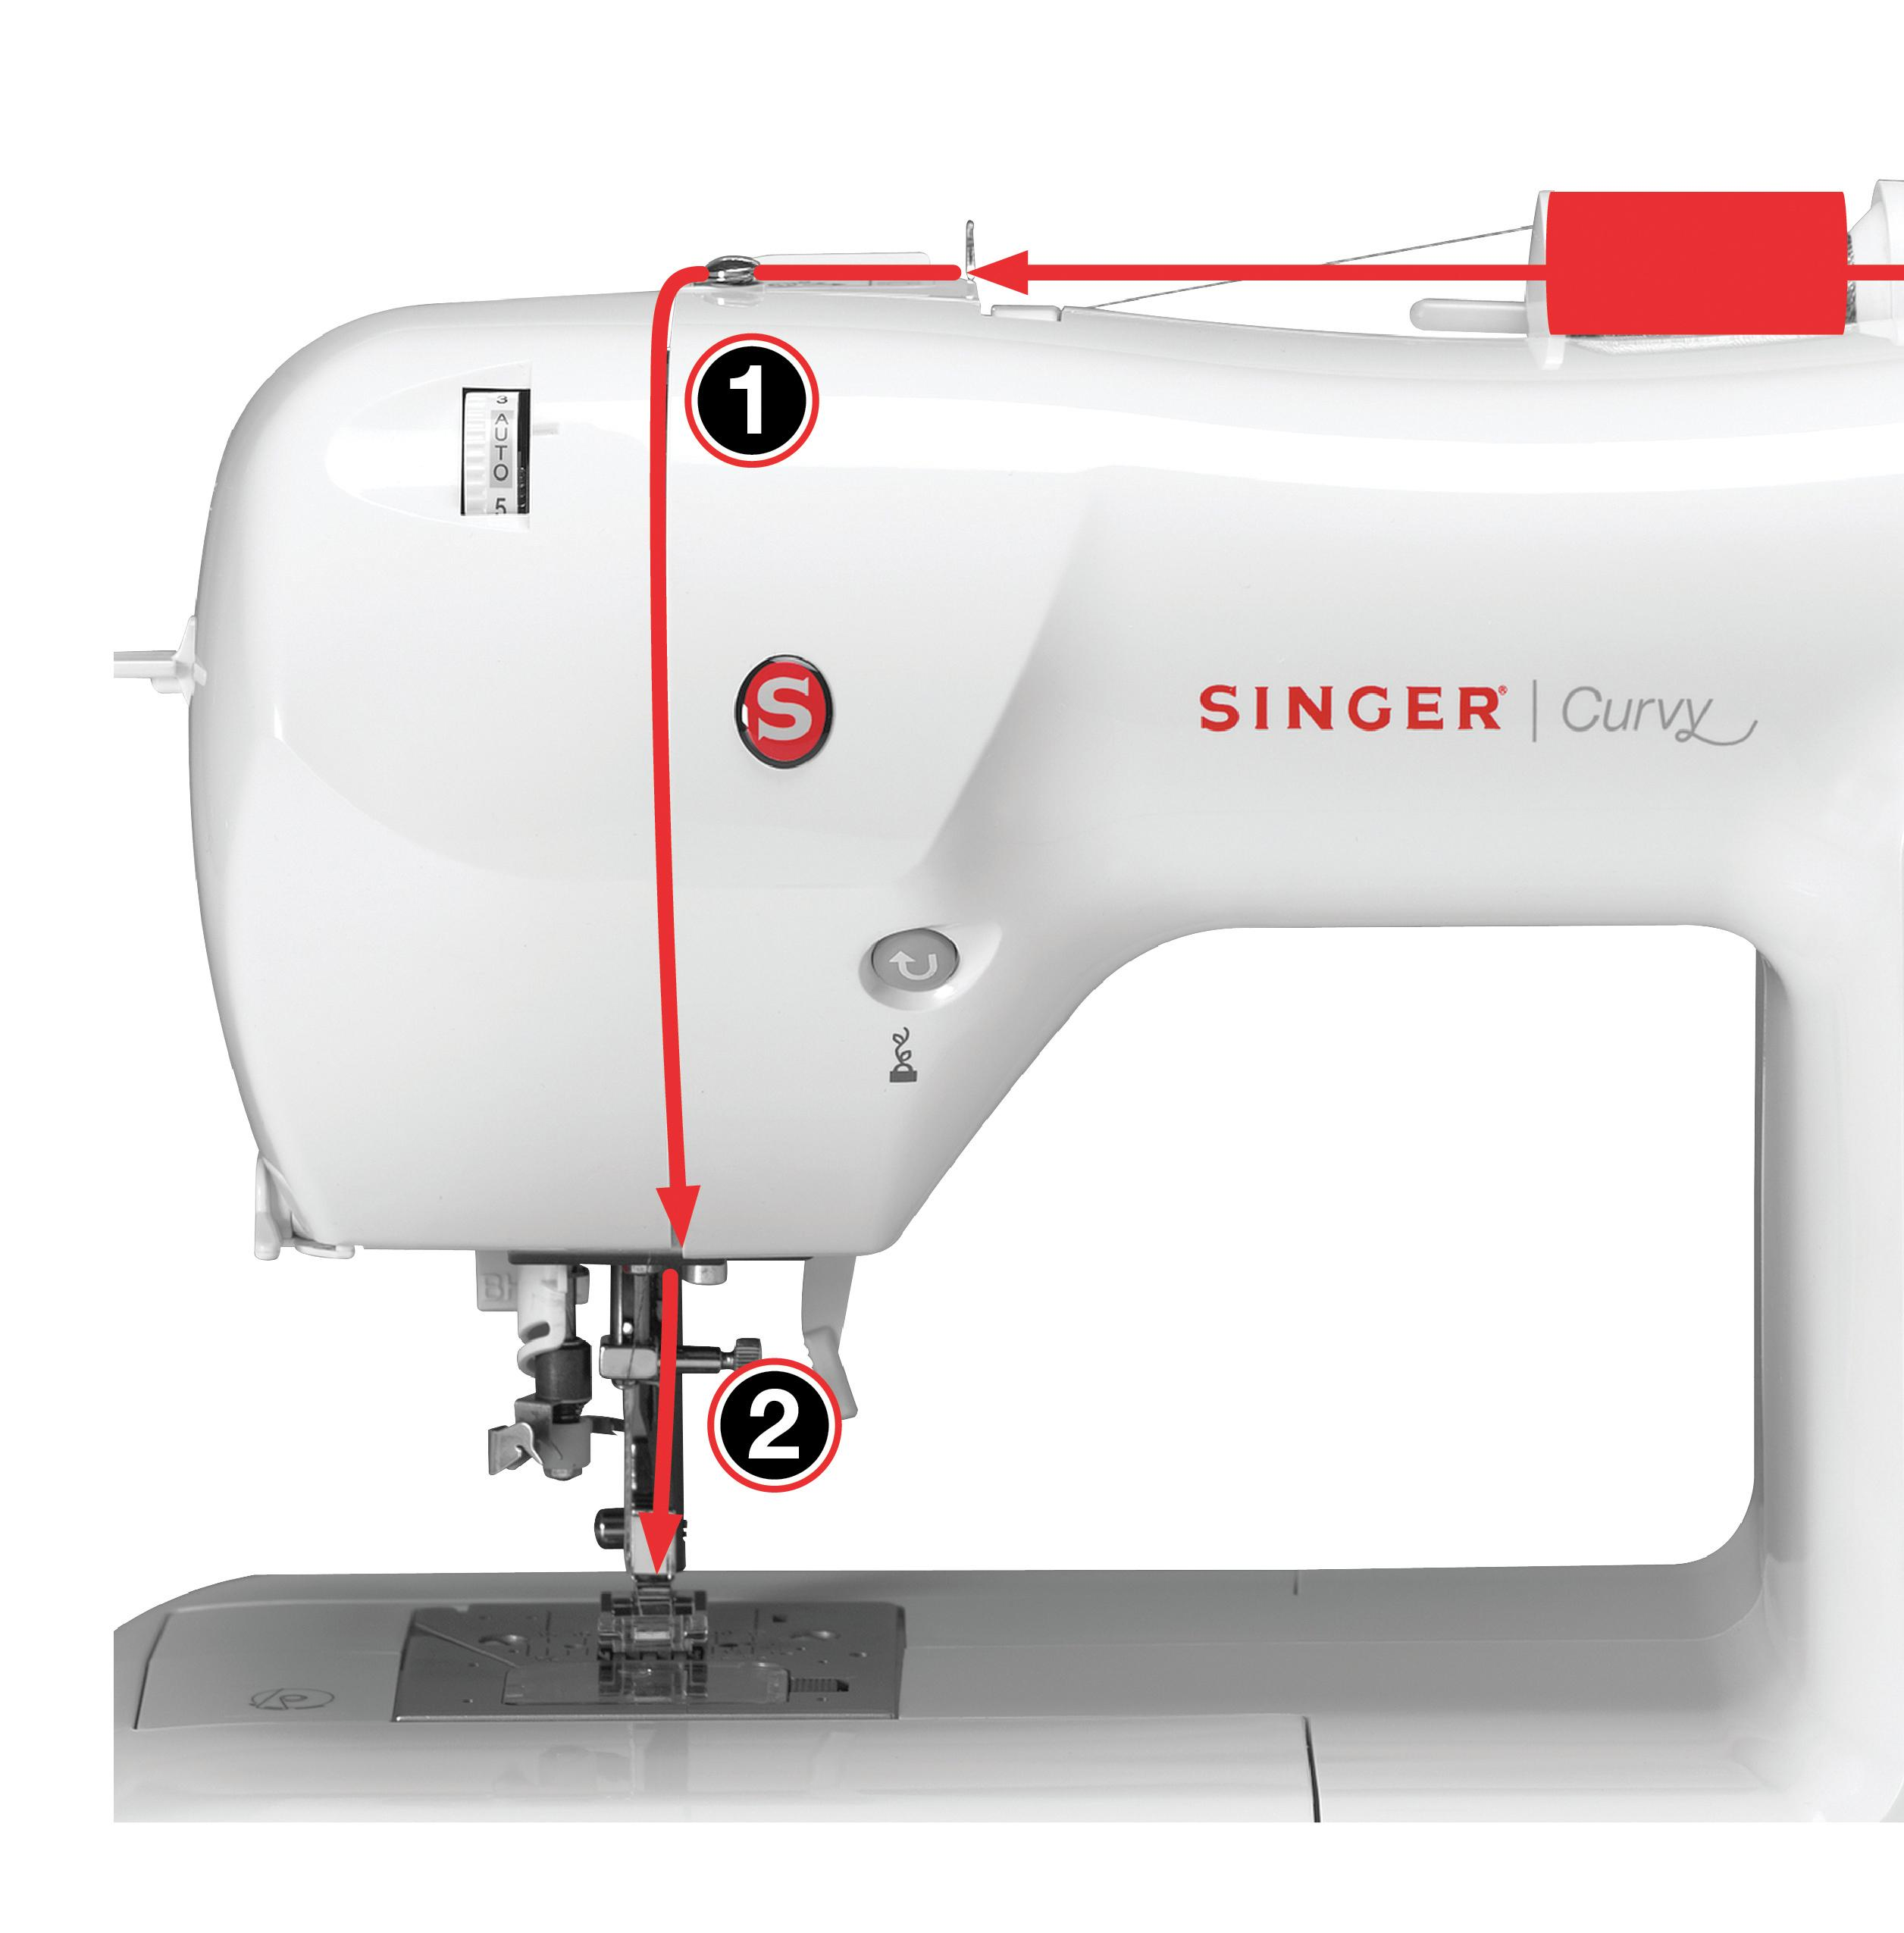 how to thread a singer curvy sewing machine